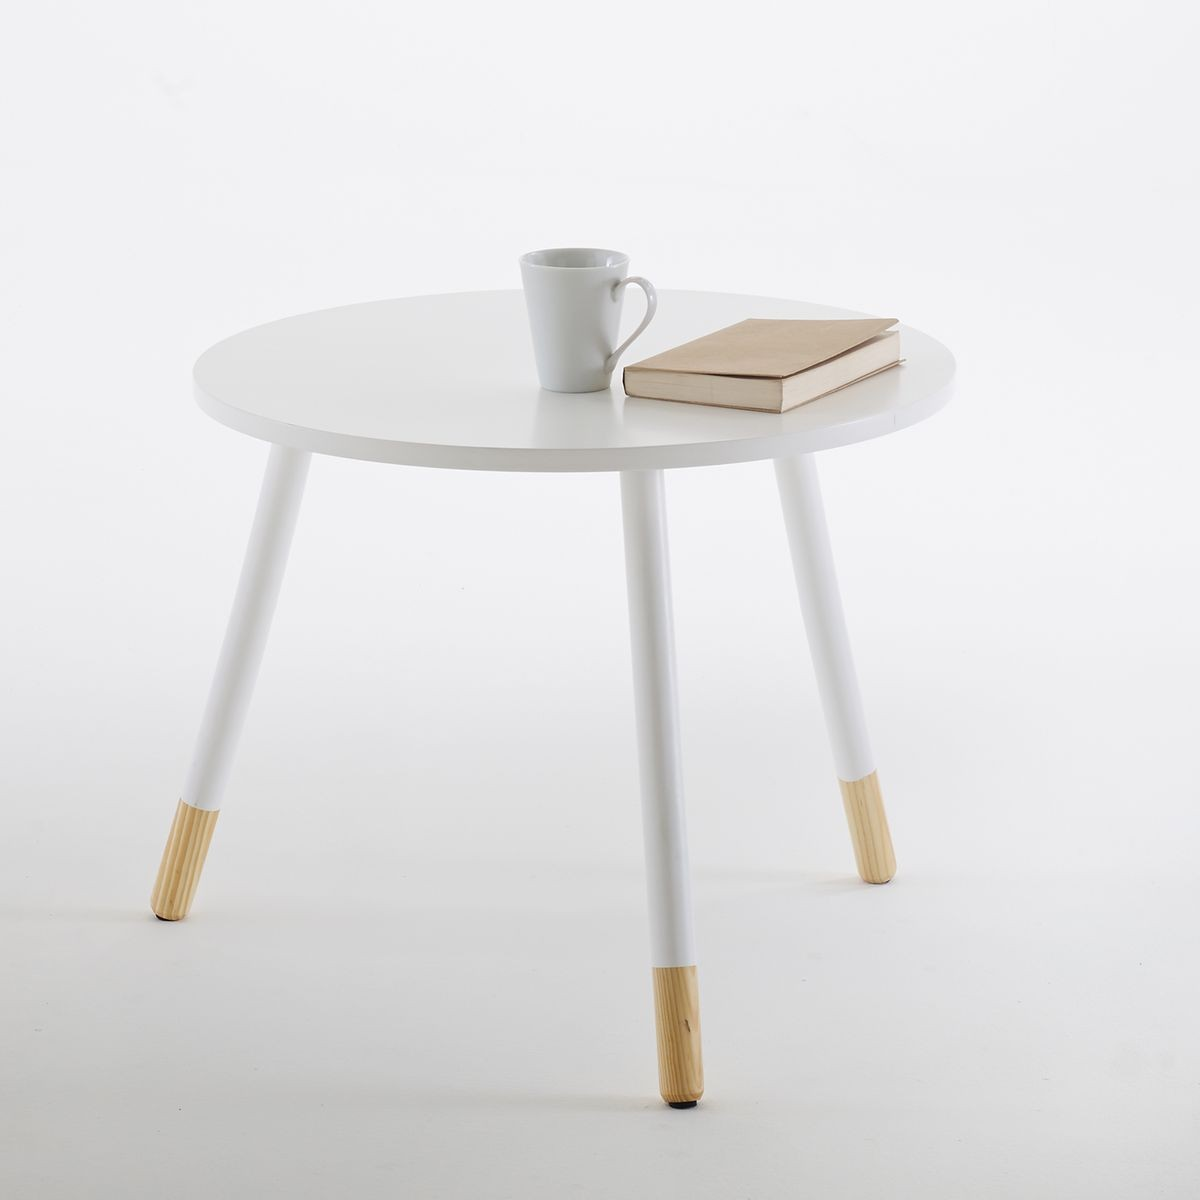 petite table basse ronde blanche